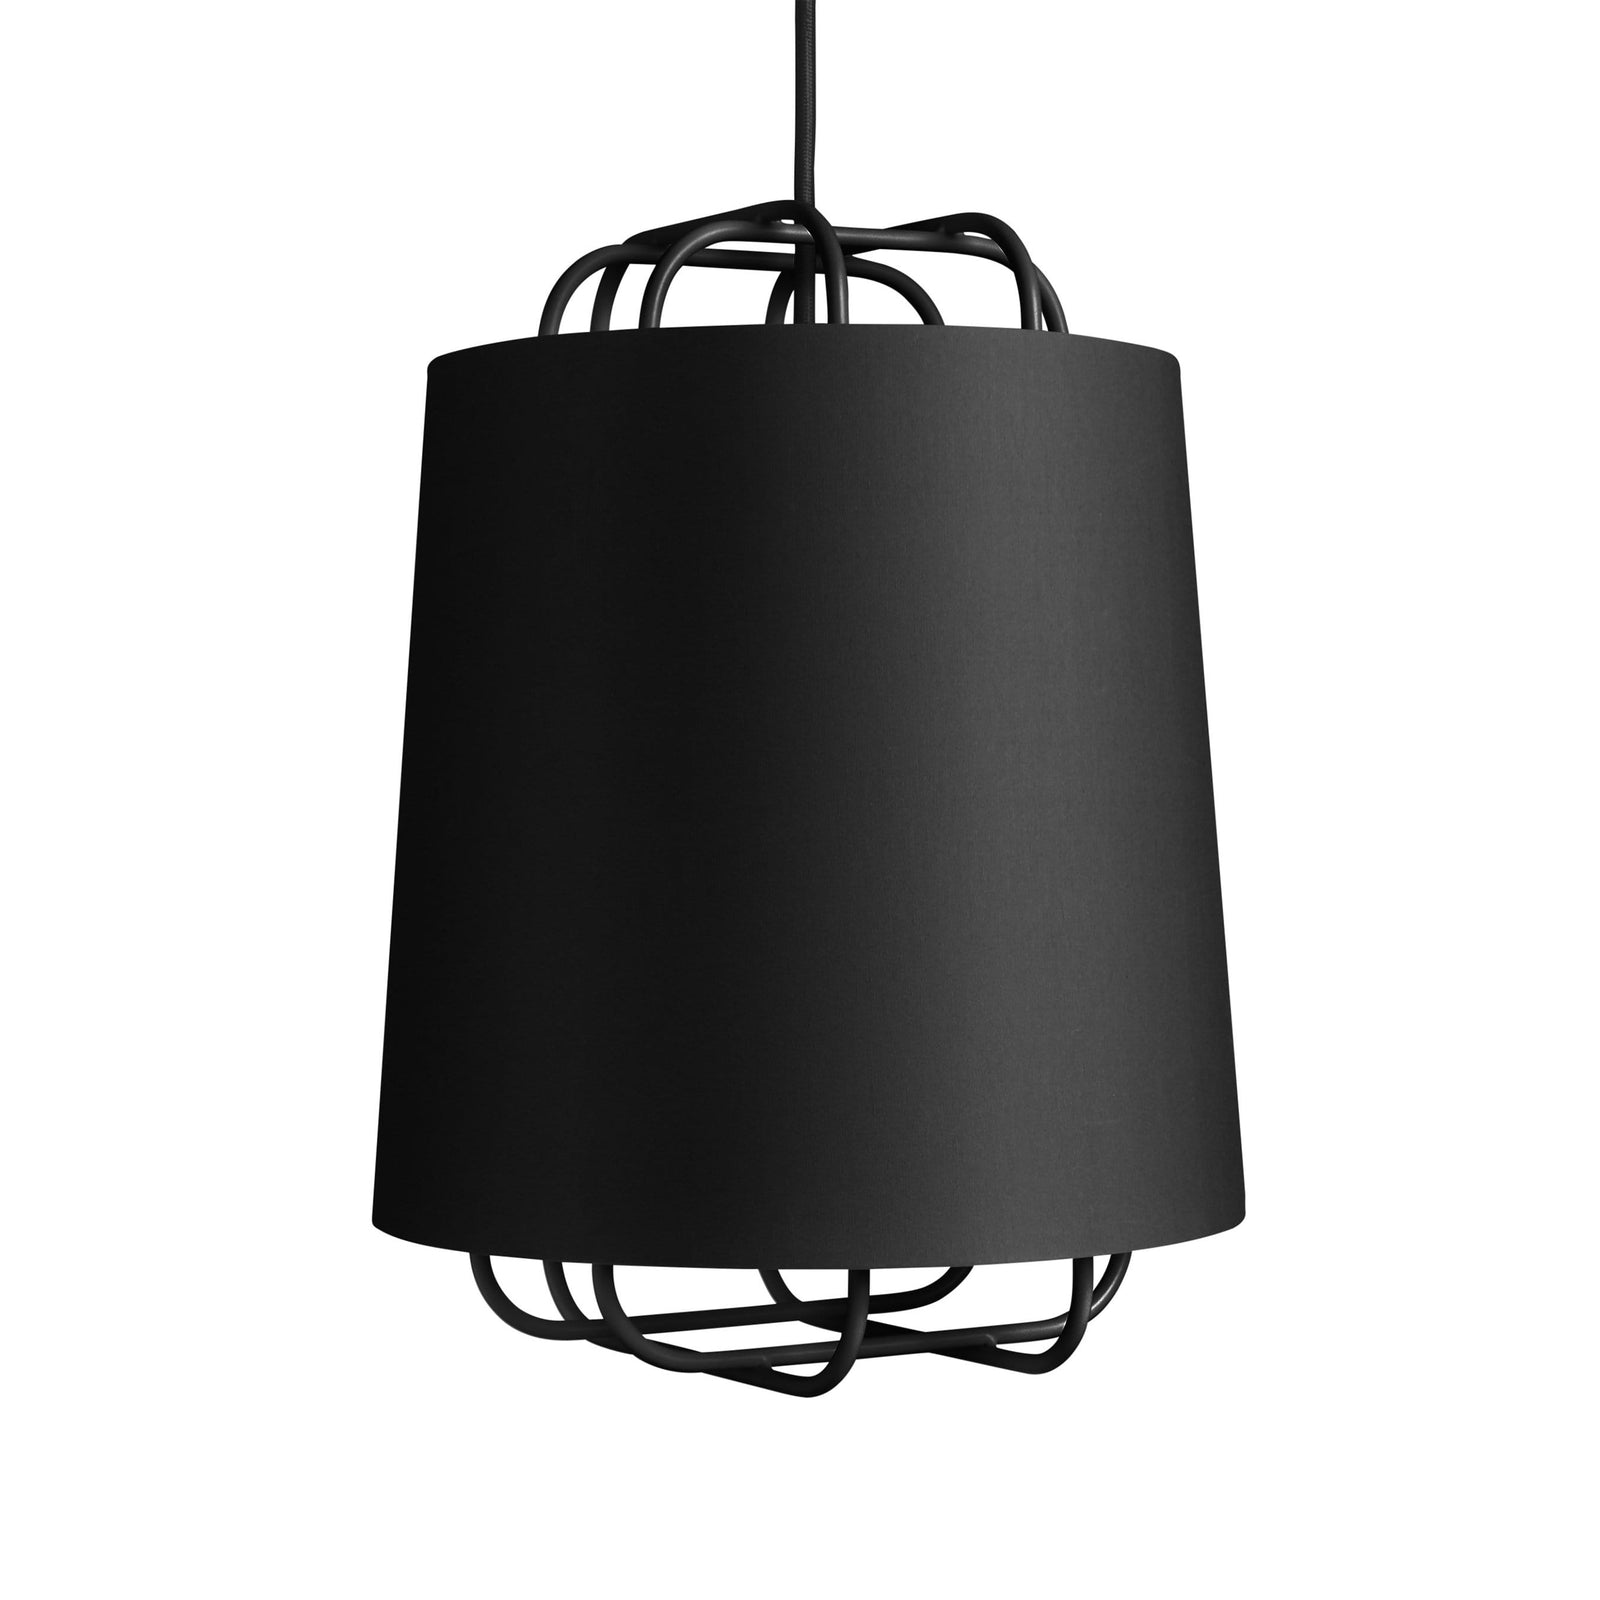 Blu Dot Lighting Black Perimeter Small Pendant Light